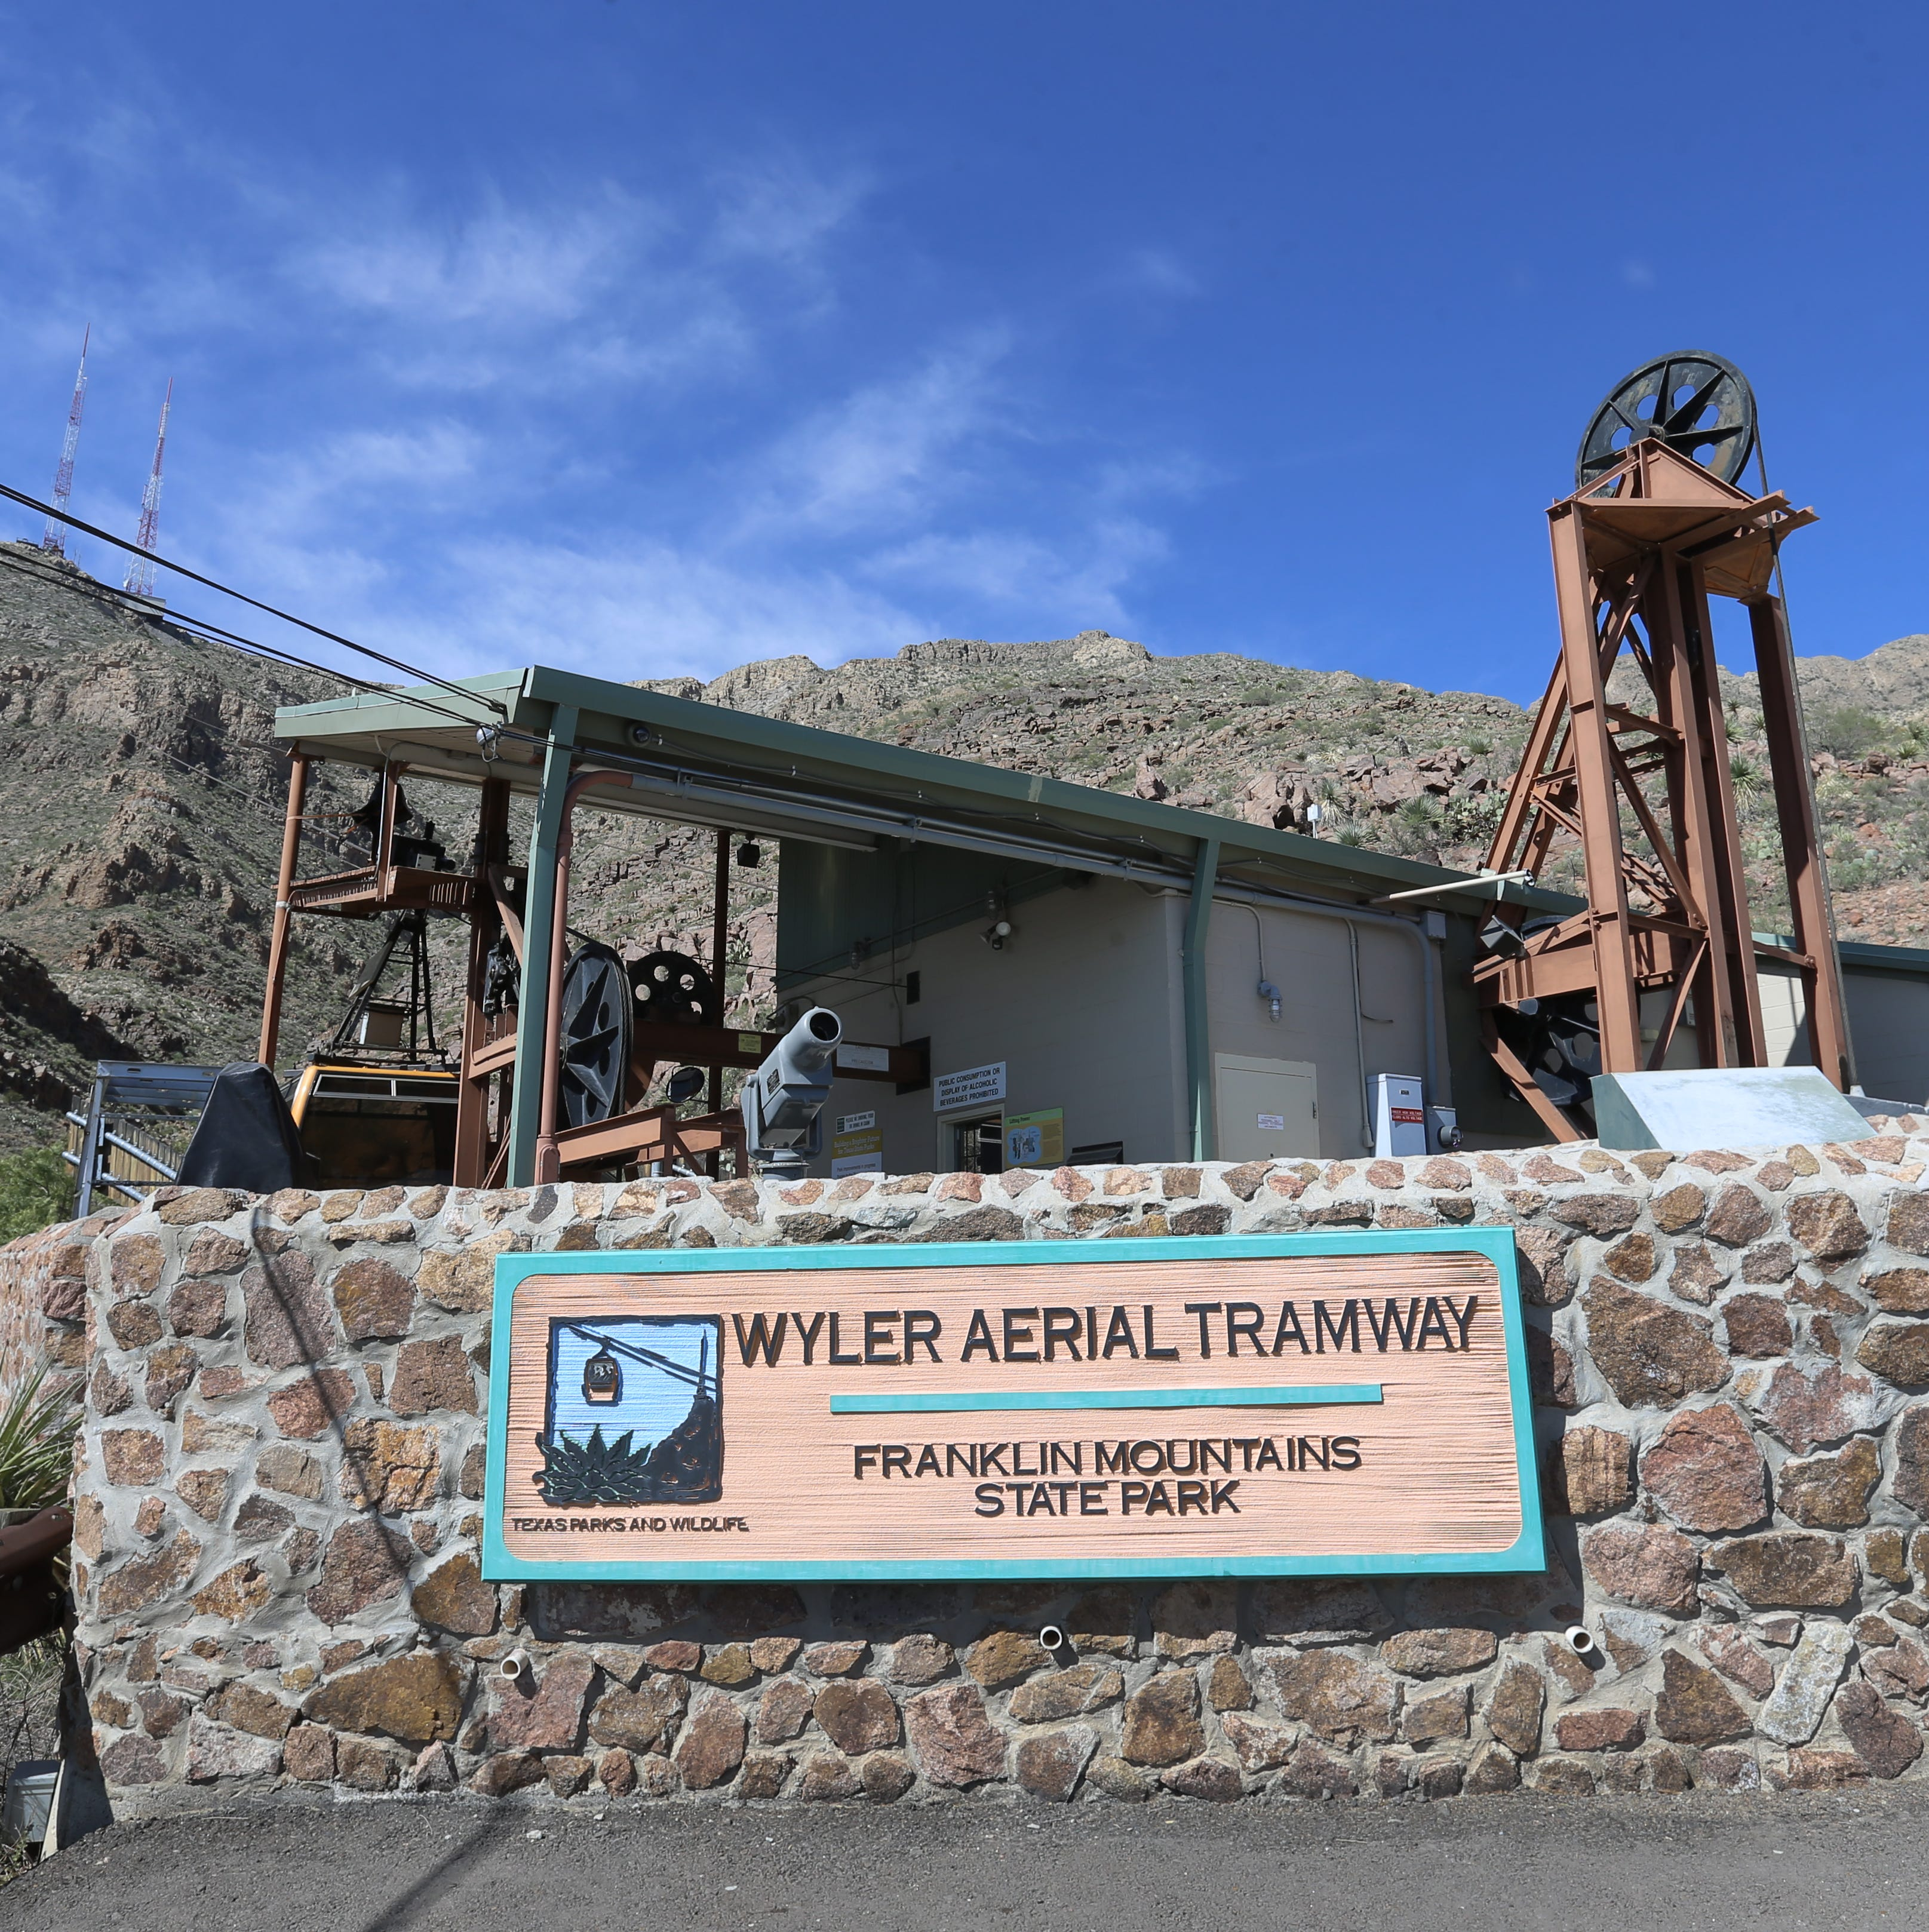 Wyler Aerial Tramway surpasses life expectancy, is shut down by Texas Parks and Wildlife